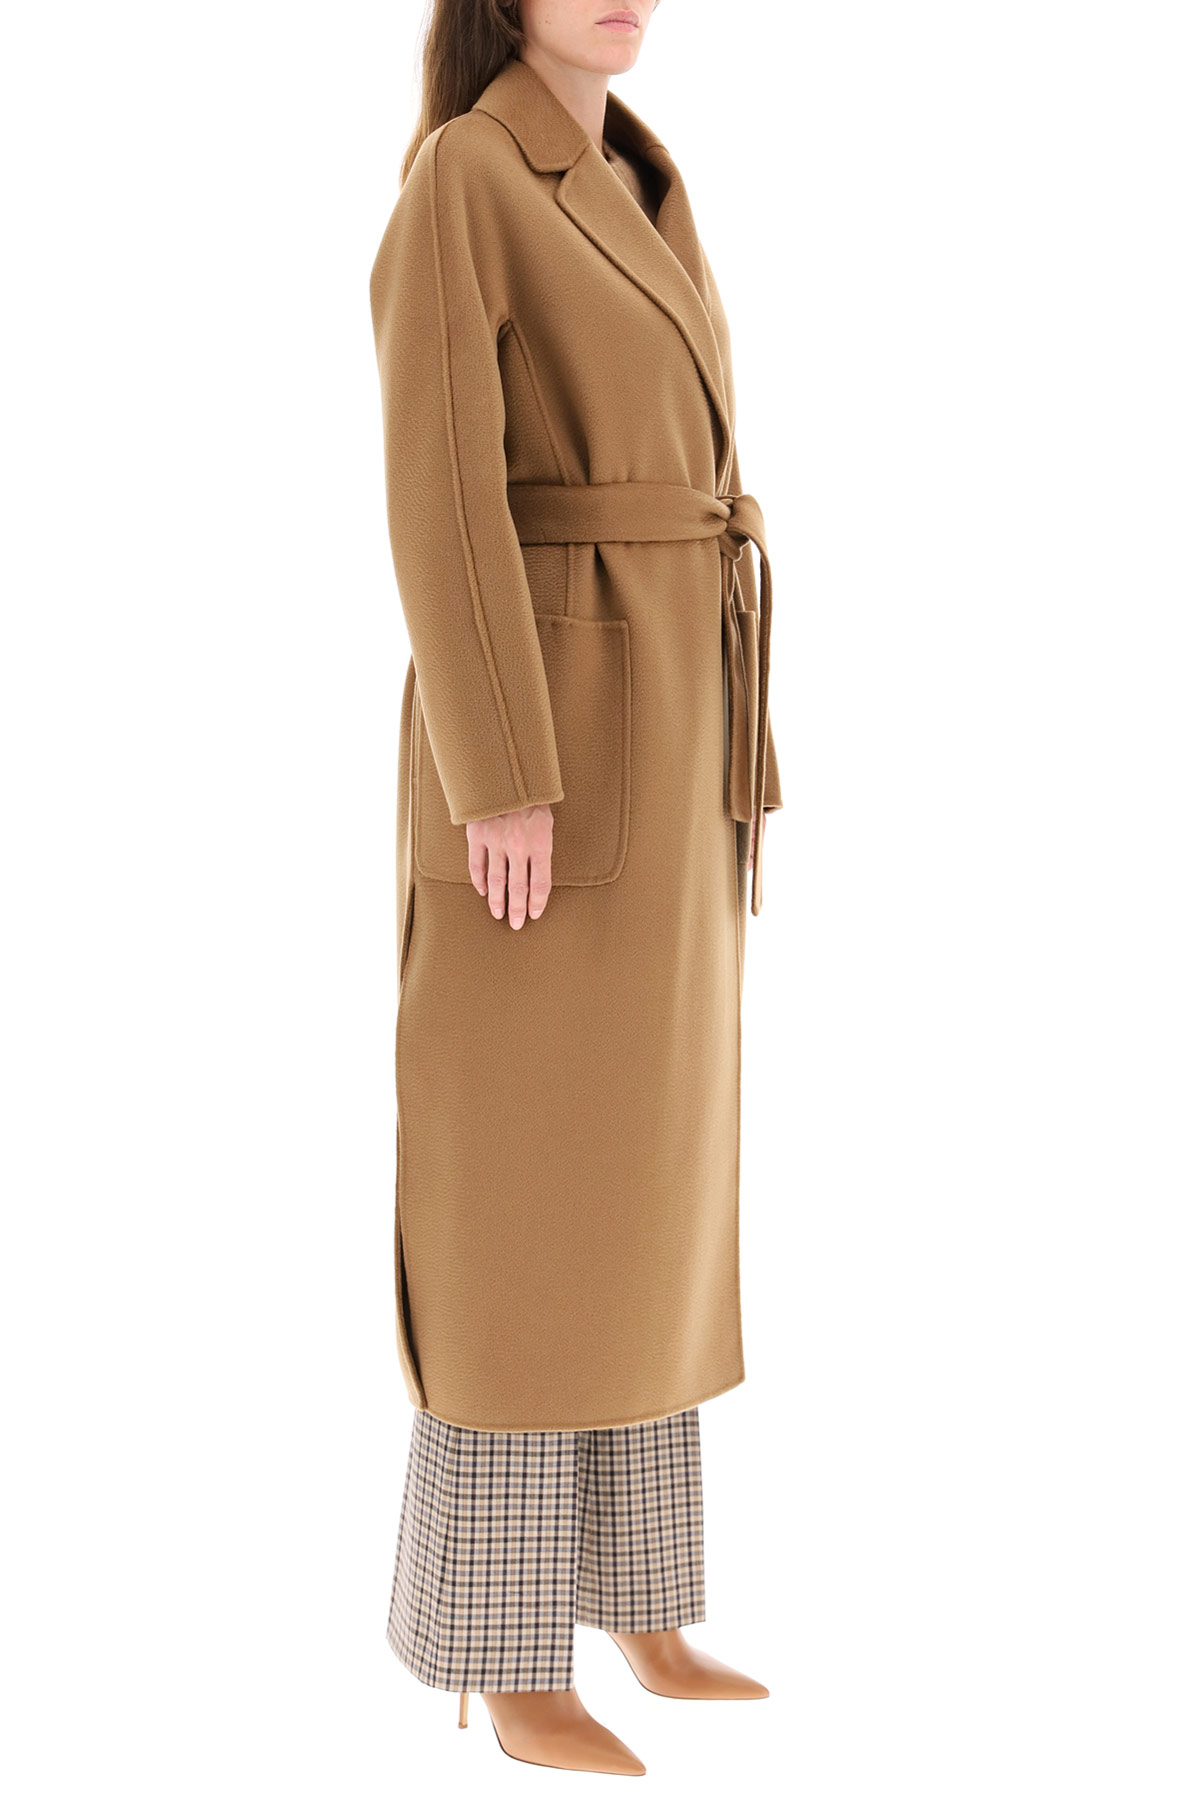 MAX MARA Cashmeres AMORE WOOL AND CASHMERE COAT